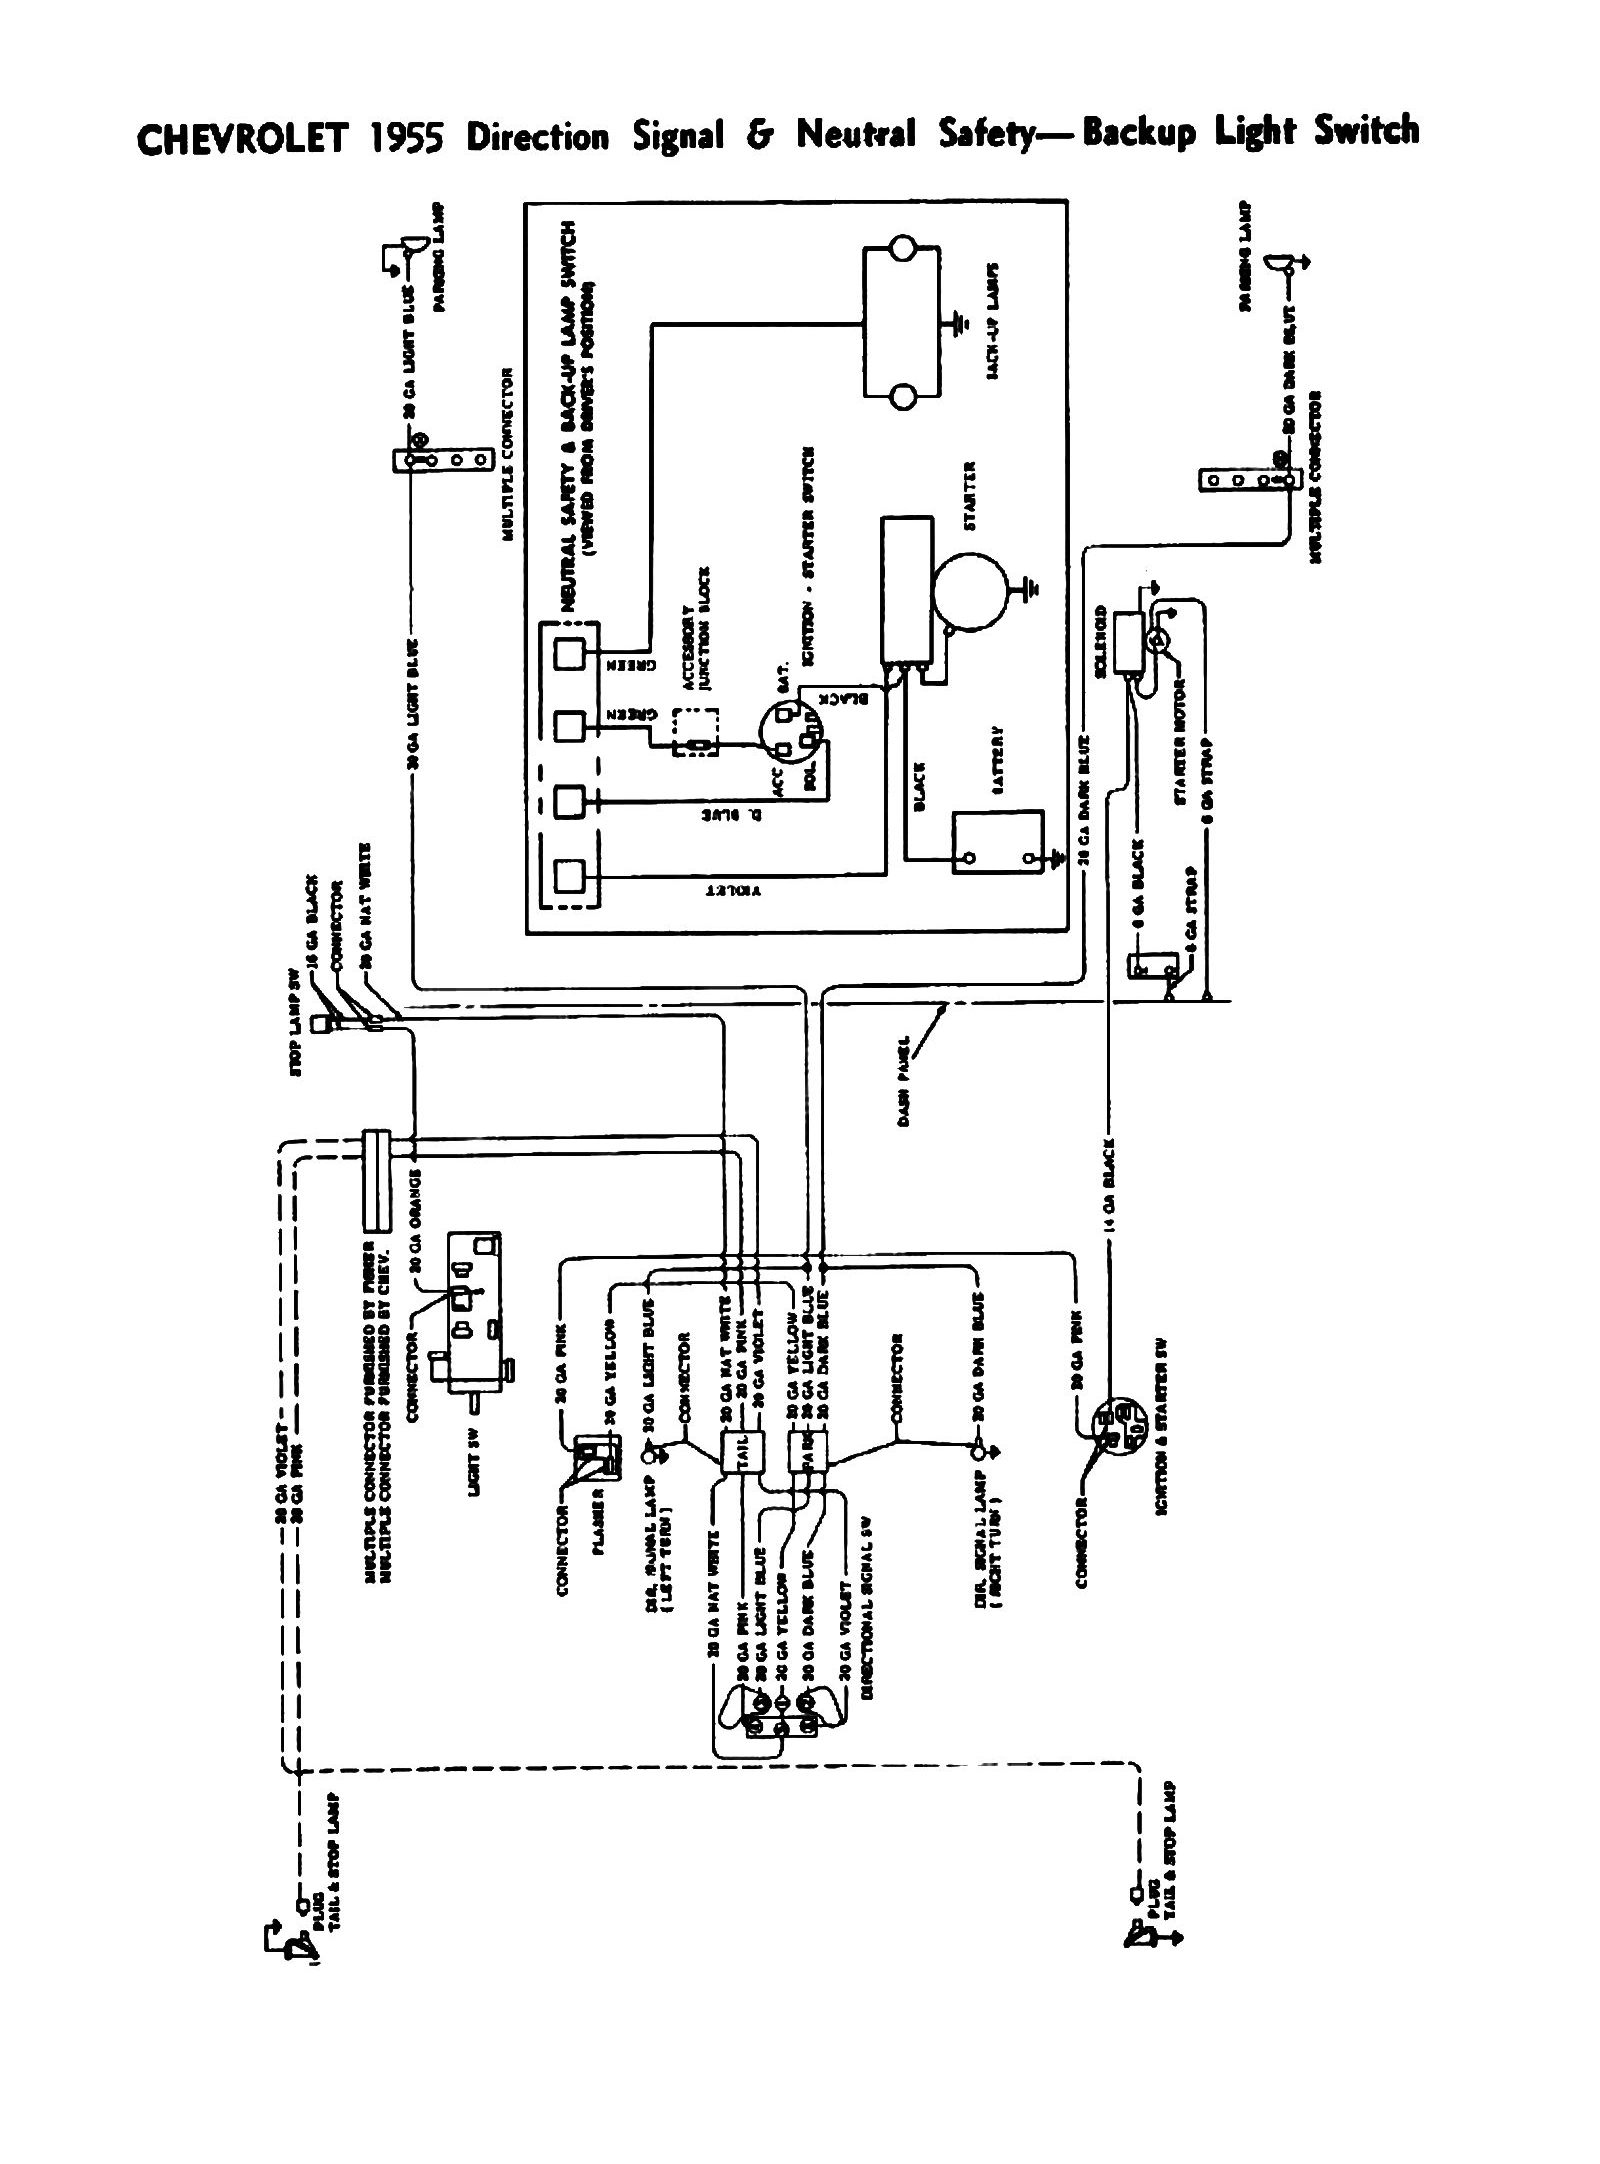 55signal chevy wiring diagrams 1956 chevy ignition switch wiring diagram at honlapkeszites.co